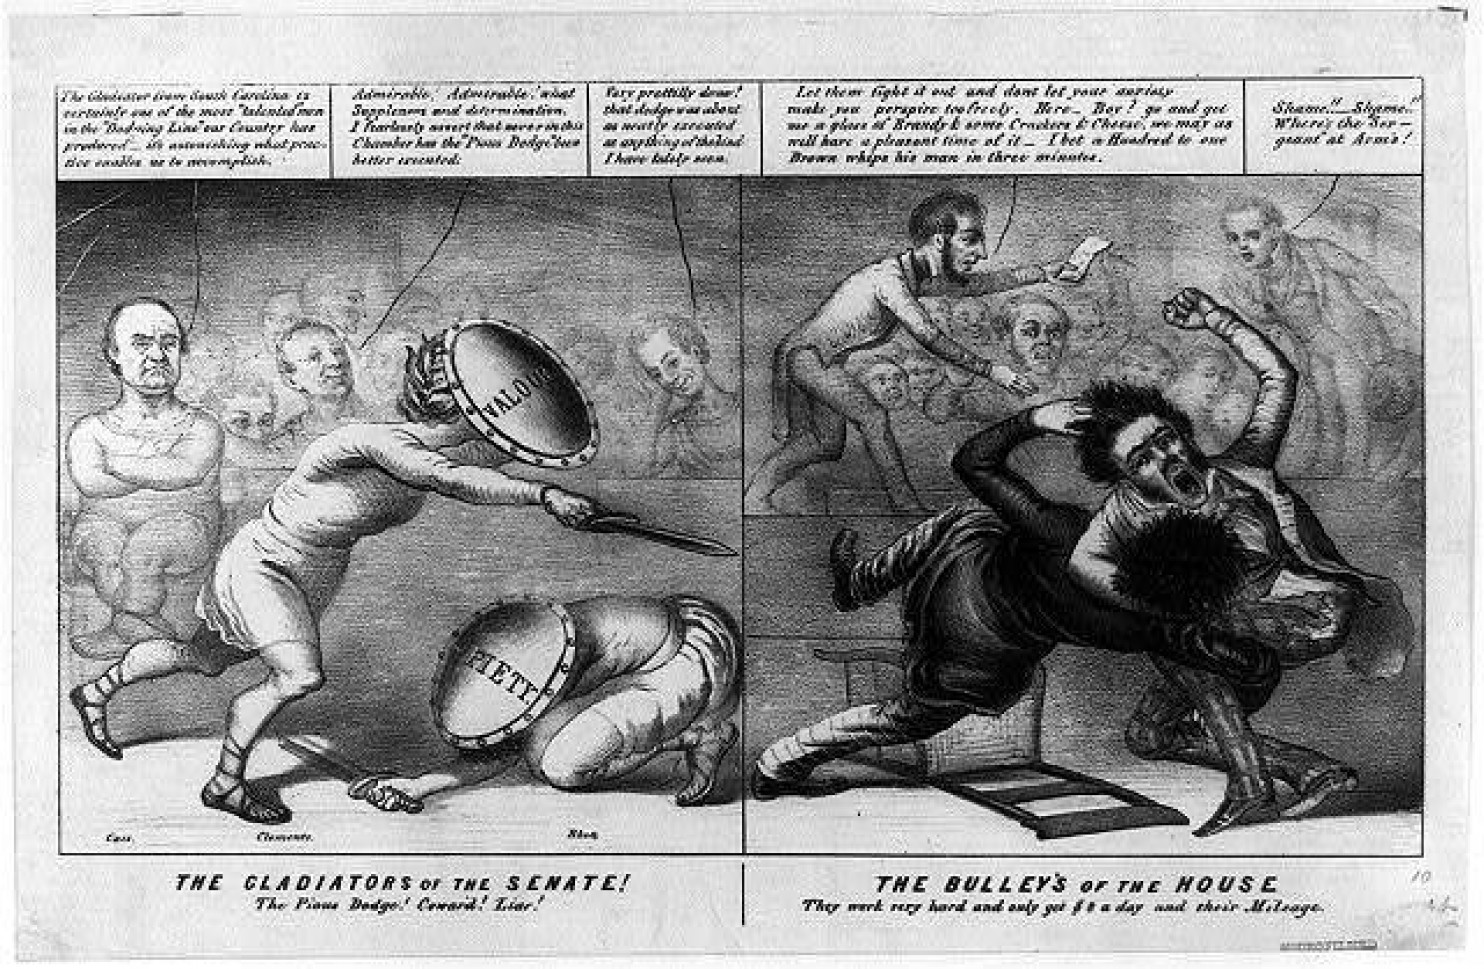 19th century reporters carried clubs and knives to defend themselves against murderous Congressjerks